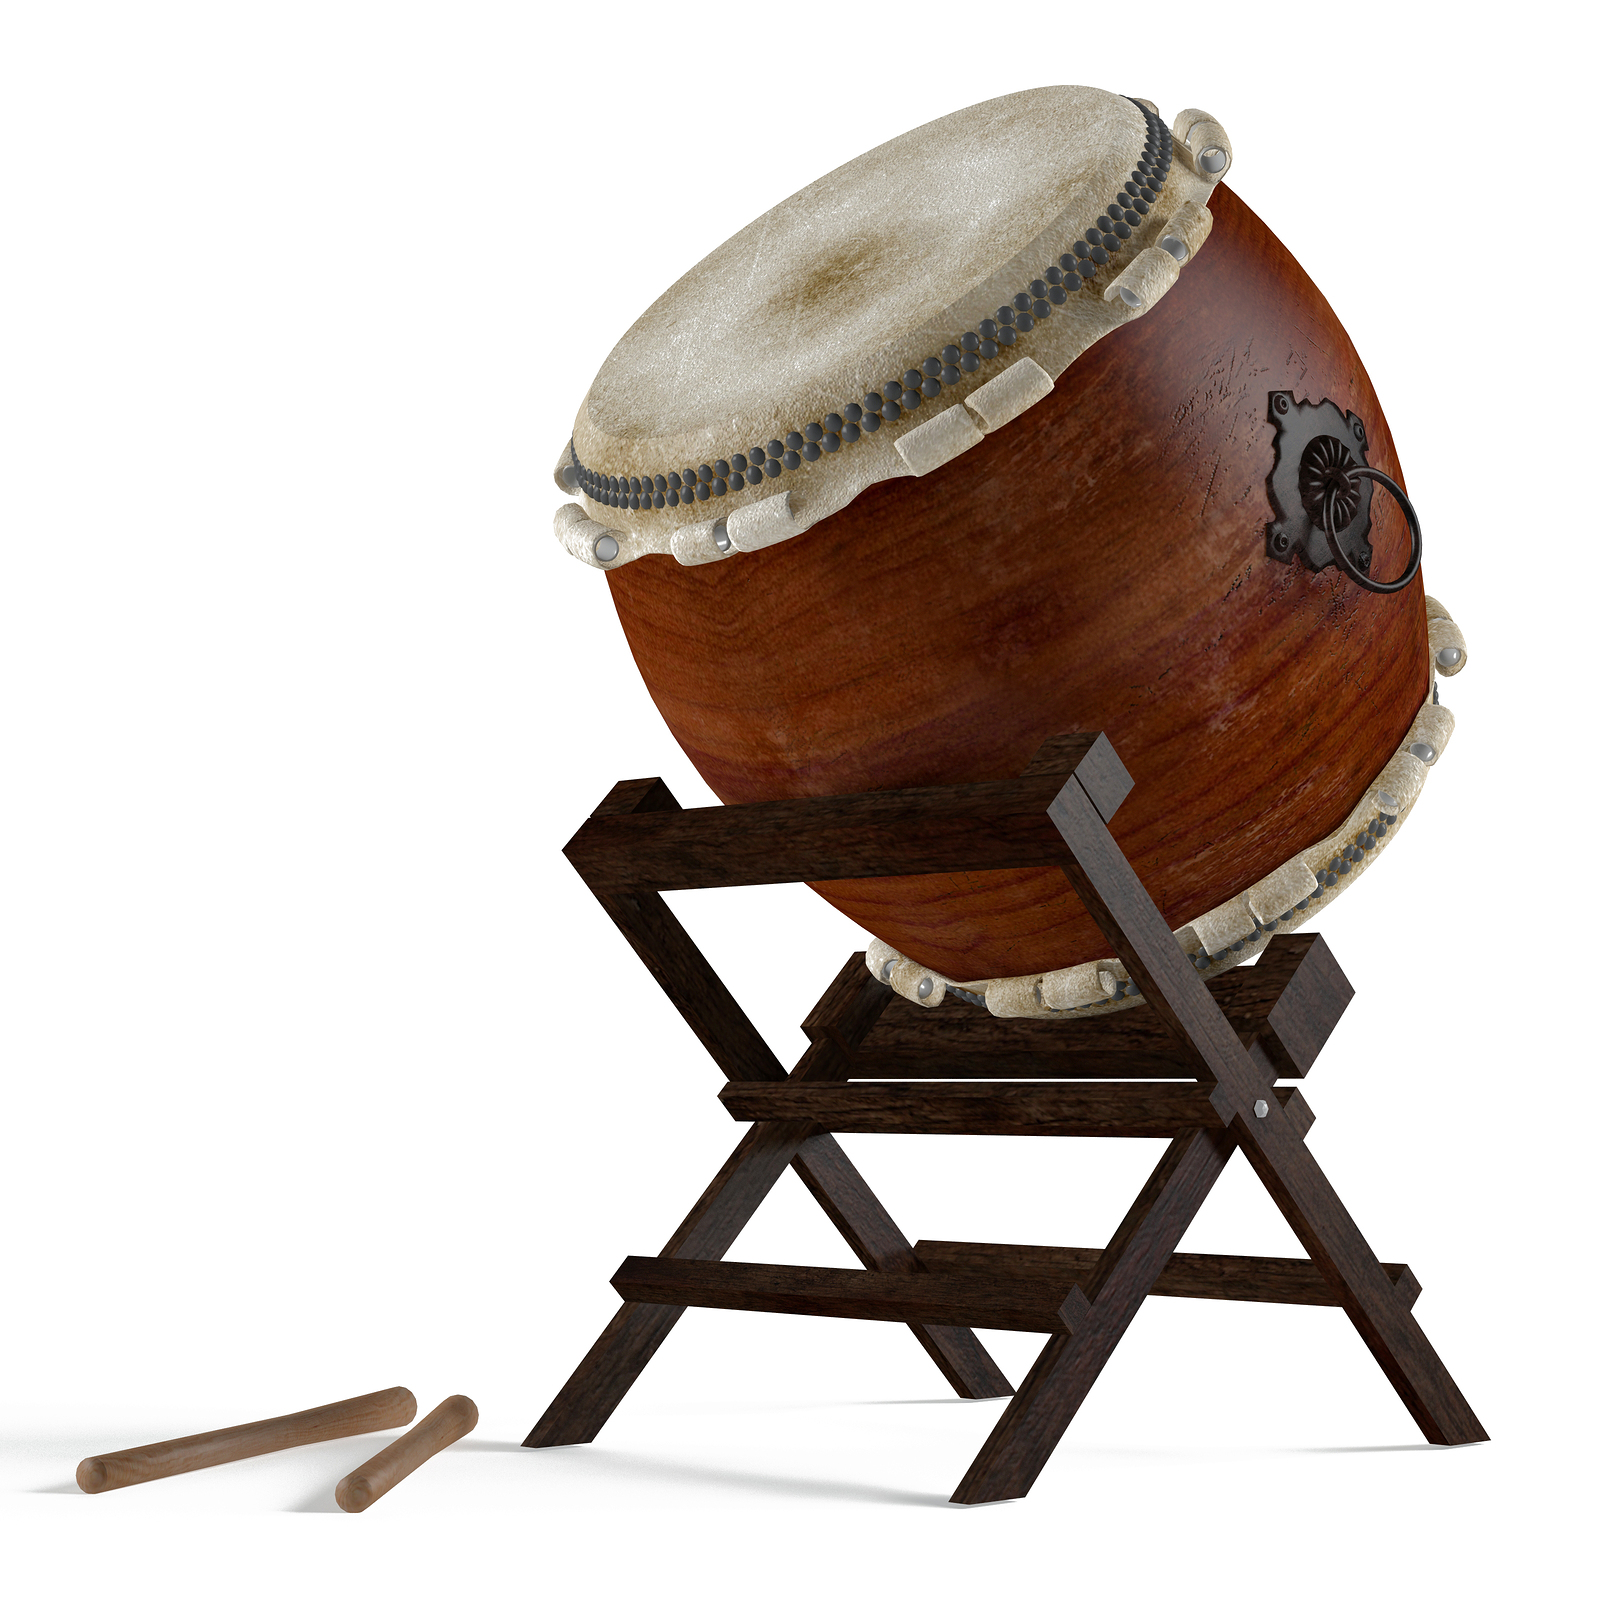 Enjoy Japanese drums near Santa Barbara real estate.